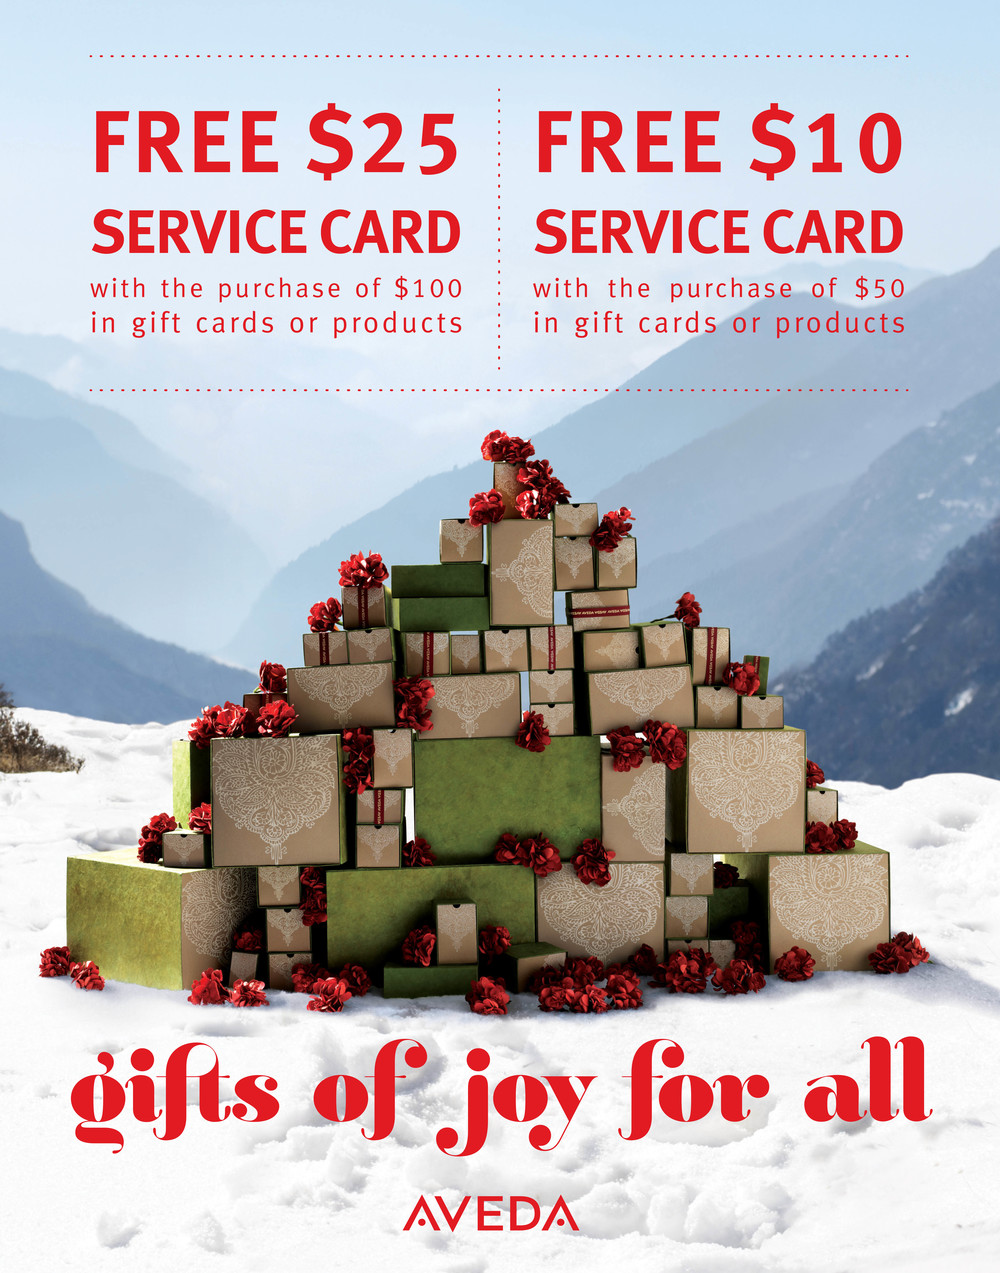 gift card specials poster 2013